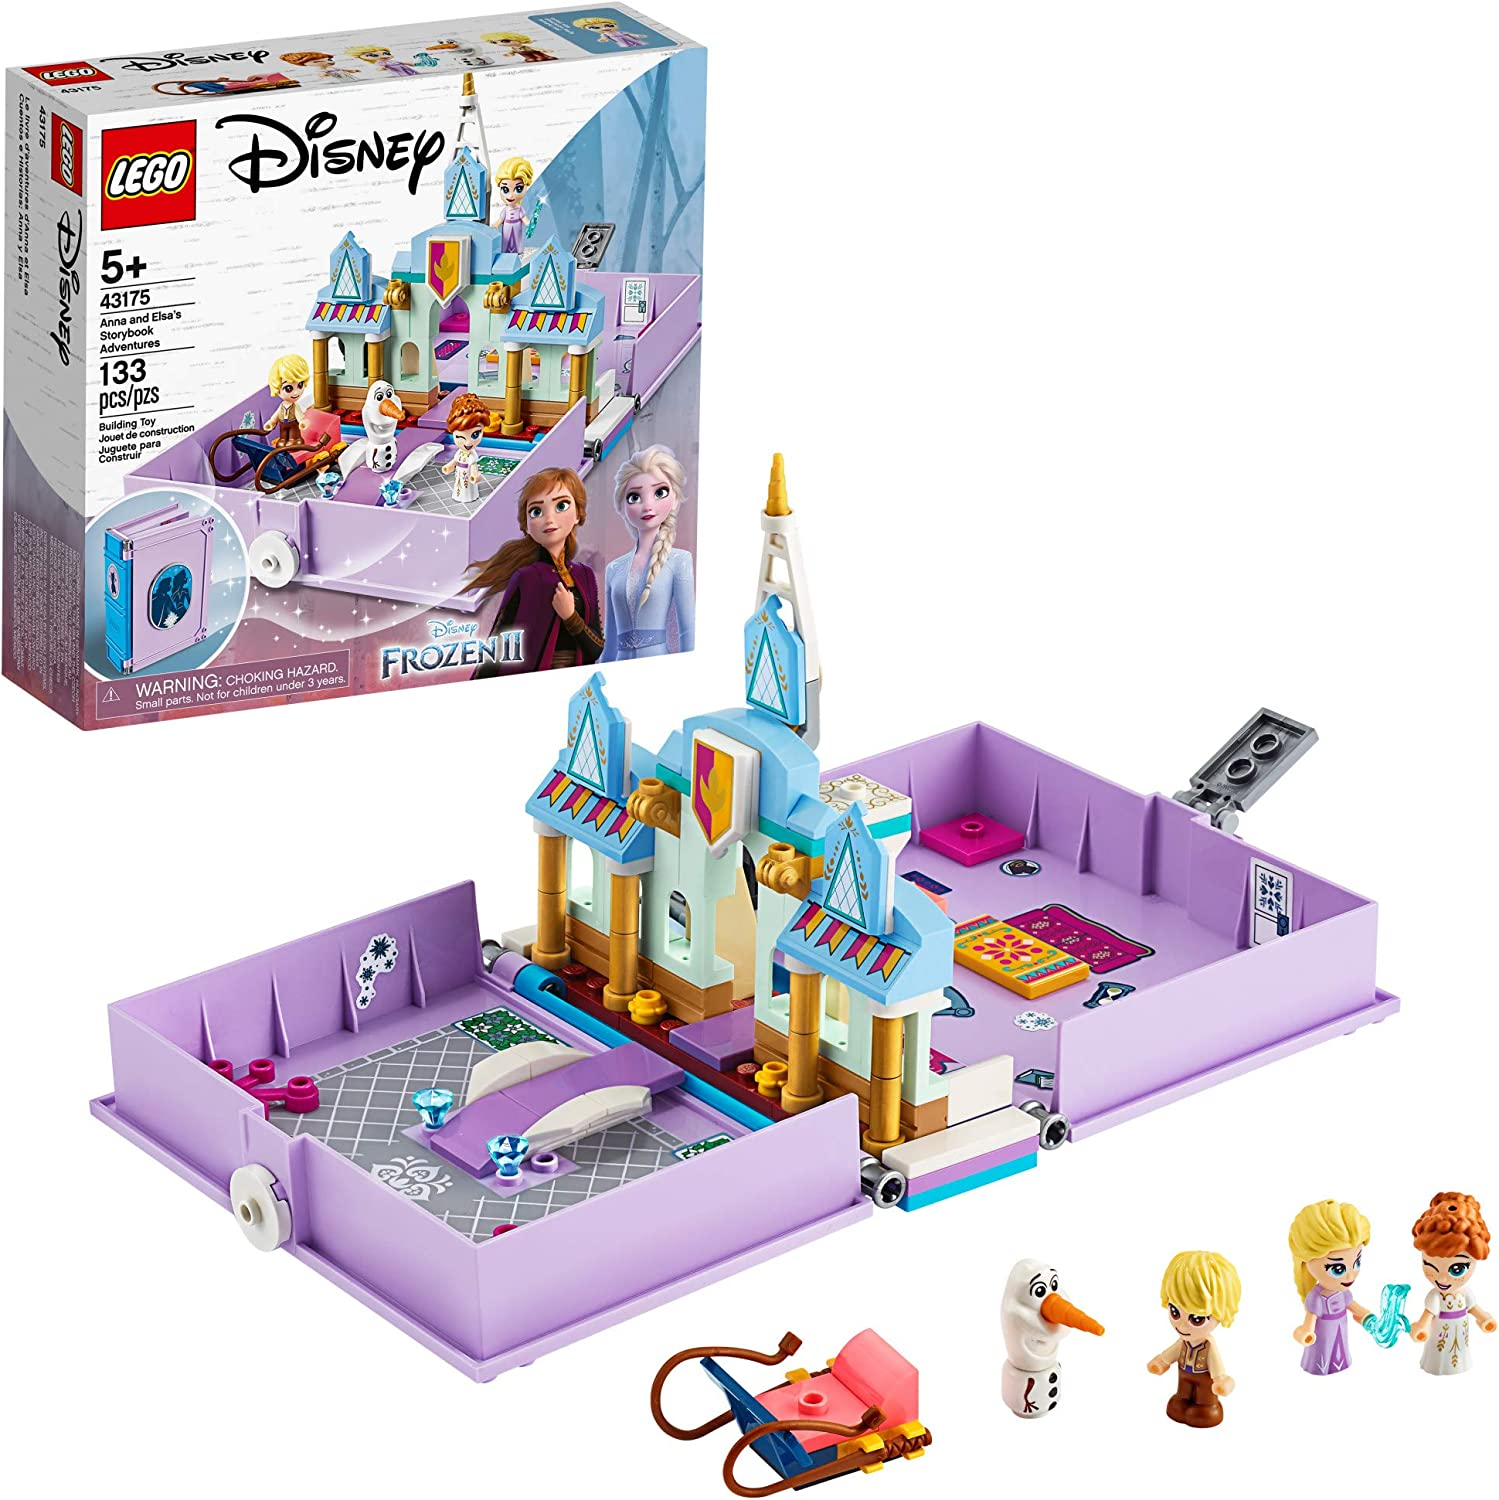 LEGO Disney Anna and Elsa's Storybook Adventures 43175 Creative Building Kit for fans of Disney's Frozen 2, New 2020 (133 Pieces)